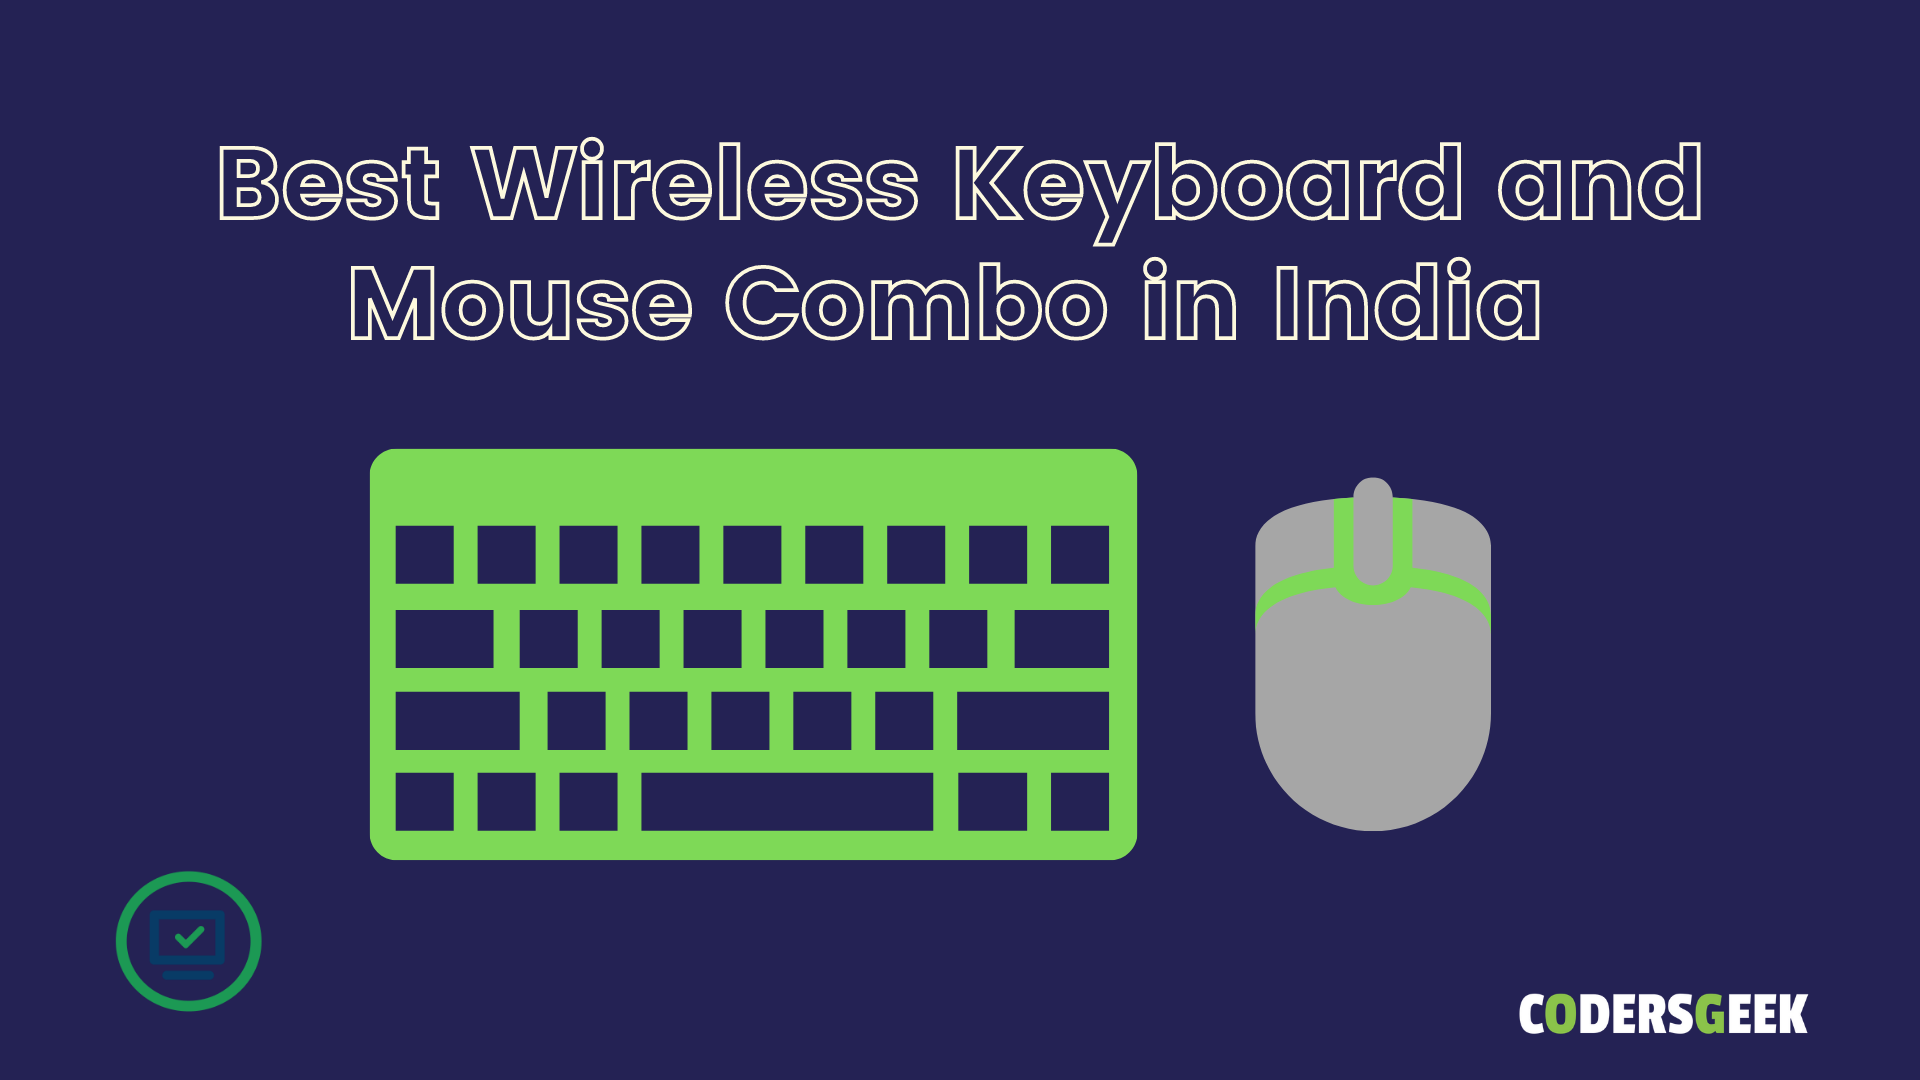 Best Wireless Keyboard and Mouse Combo in India